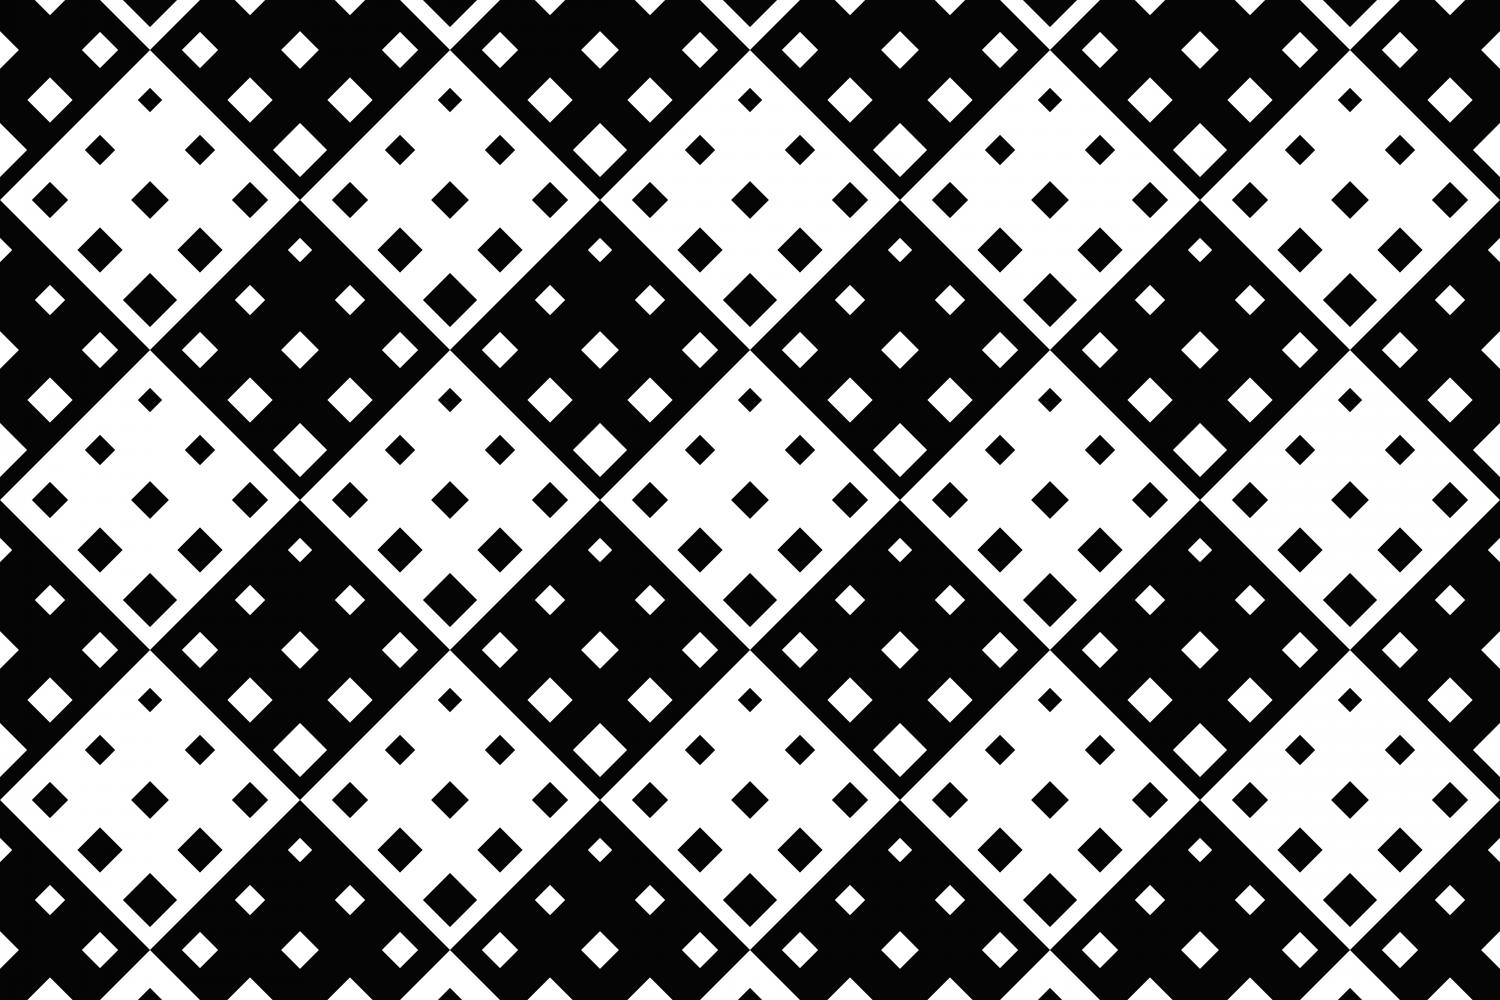 24 Seamless Square Patterns example image 16